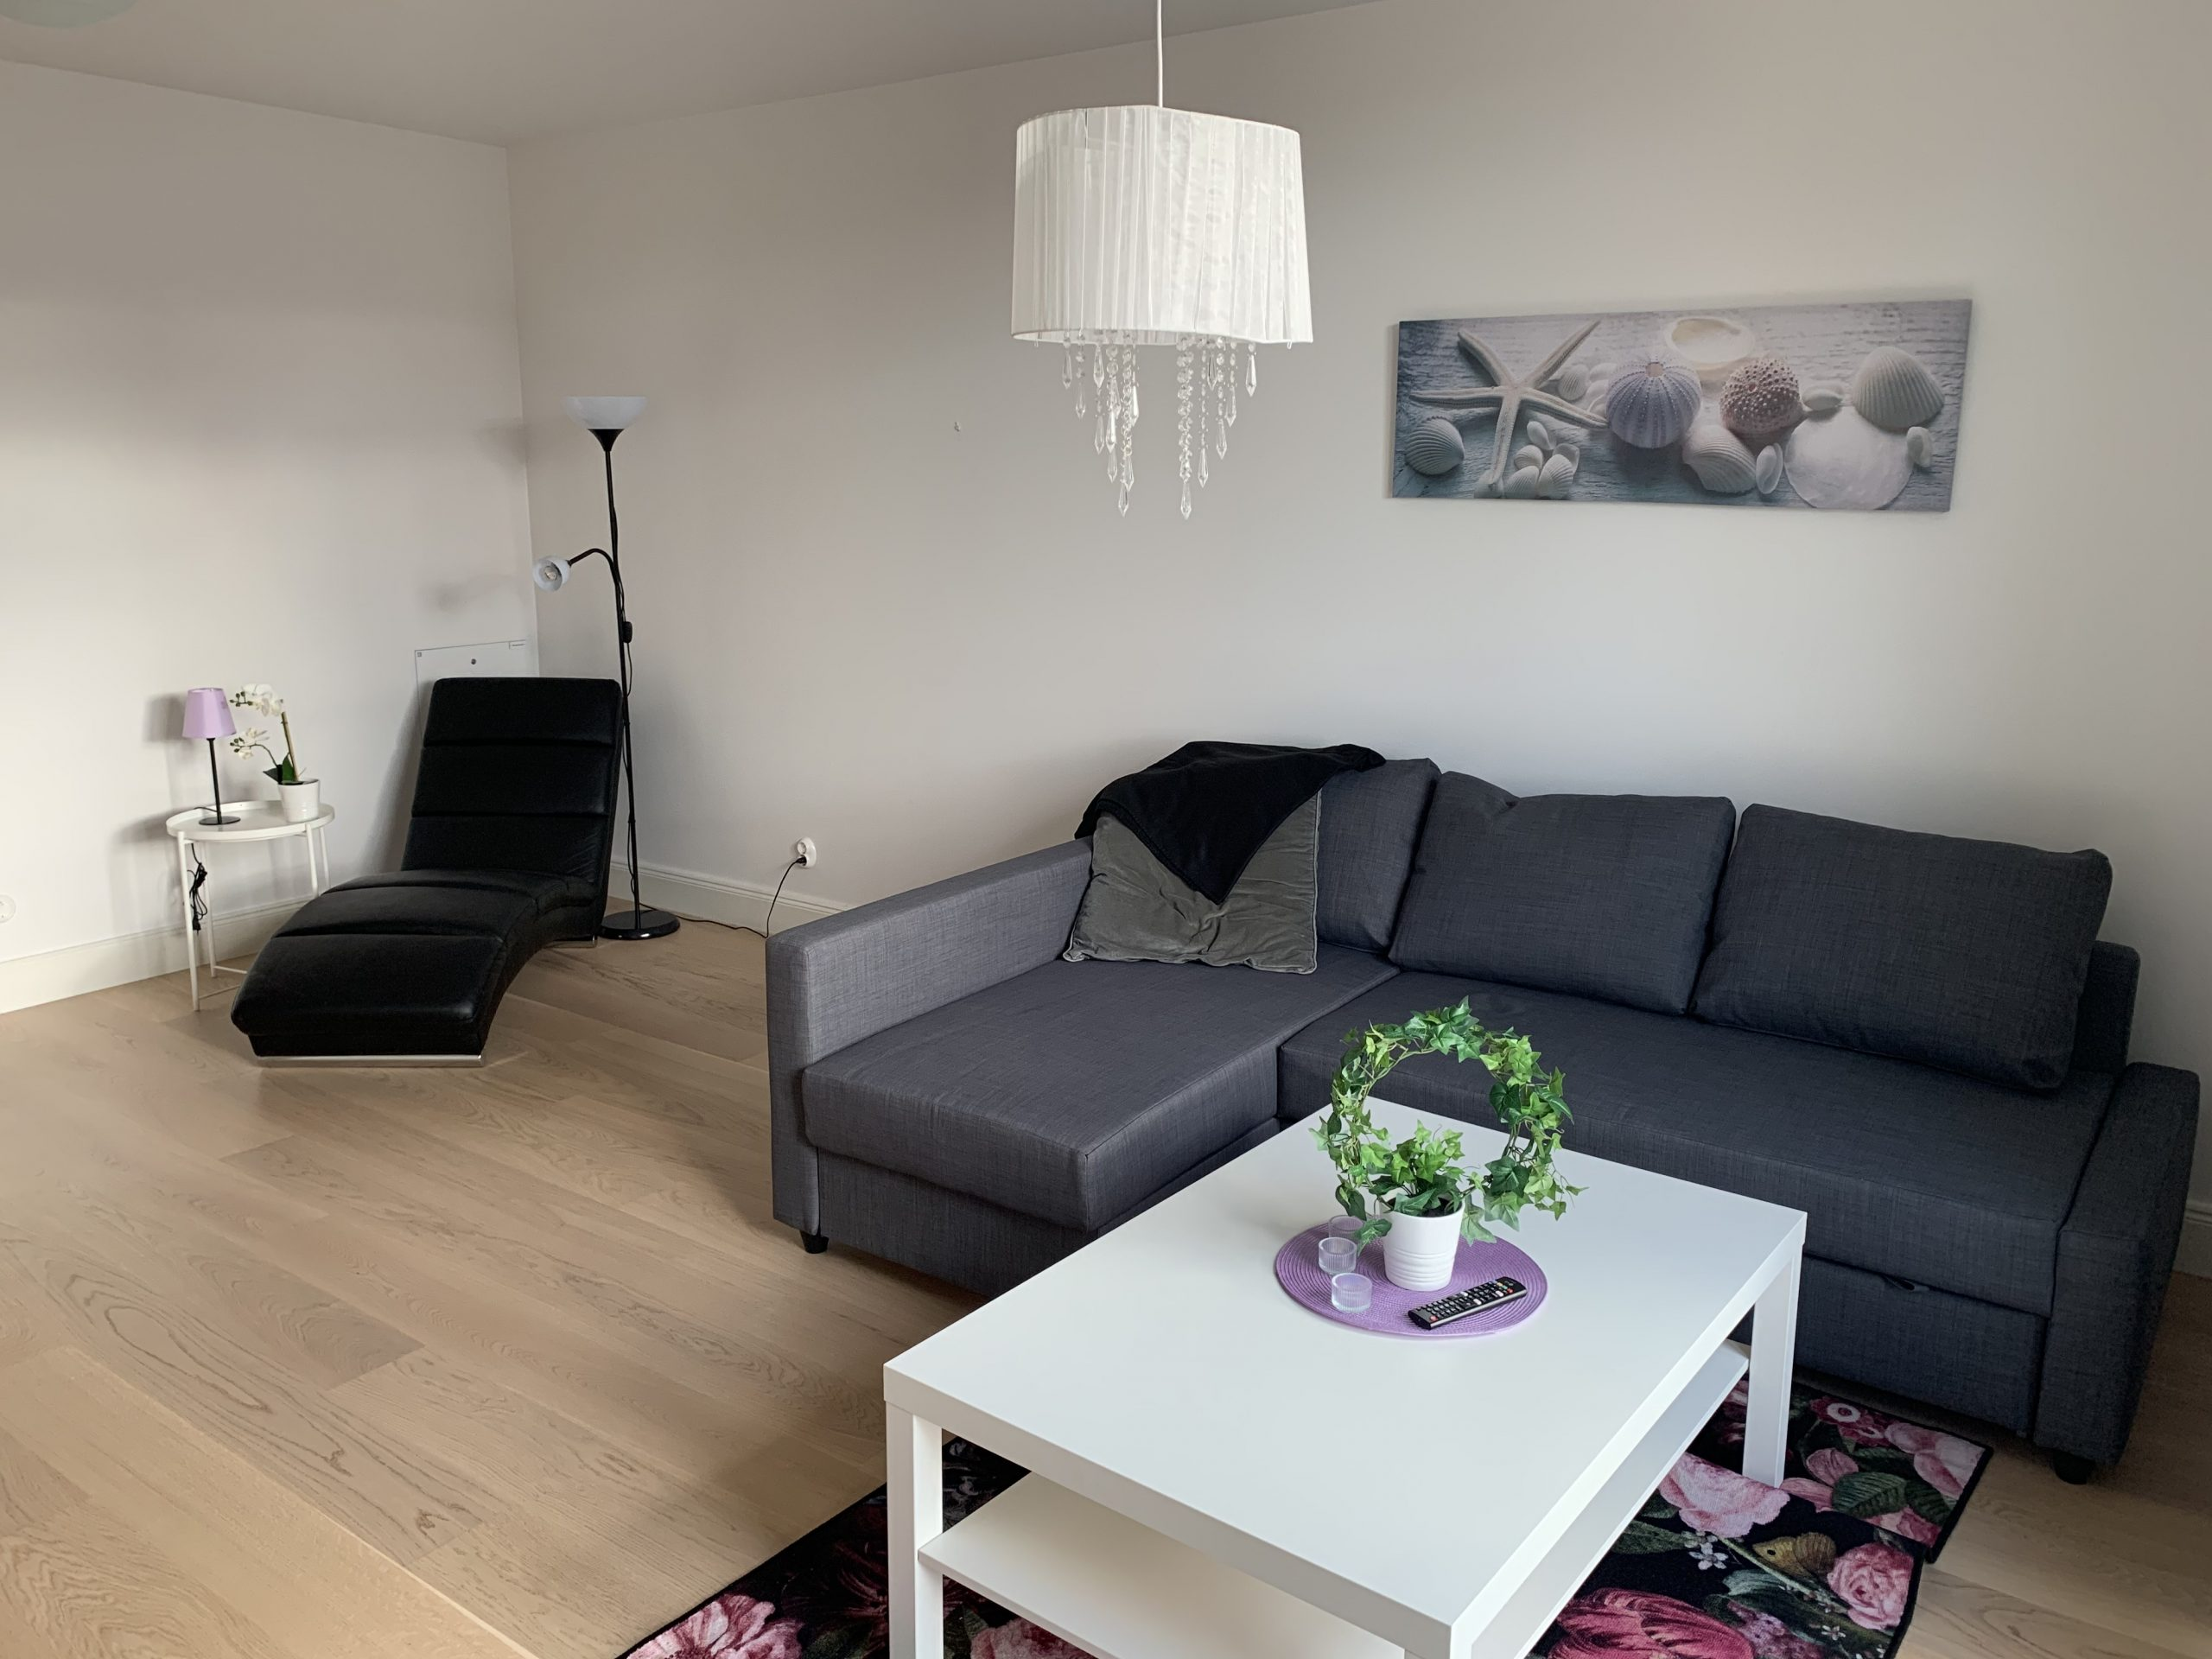 businessaccommodation, furnished apartment, longstay, stay easy